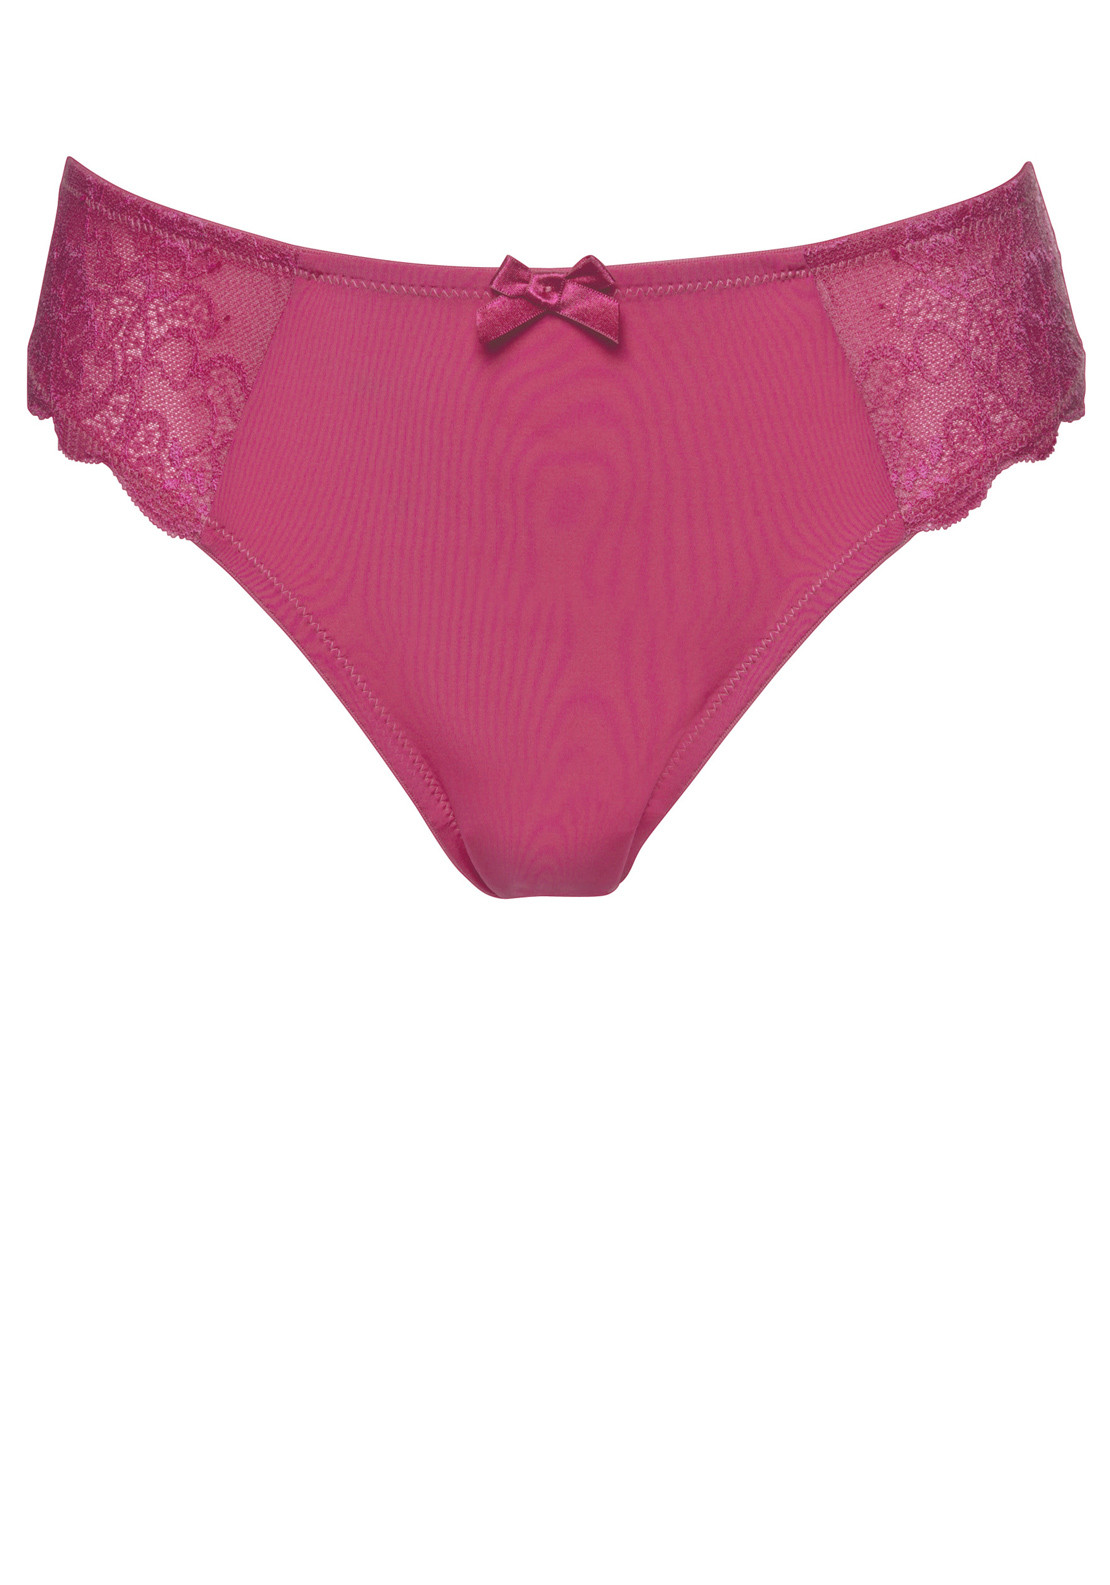 Signature by After Eden Florence Brief, Pink